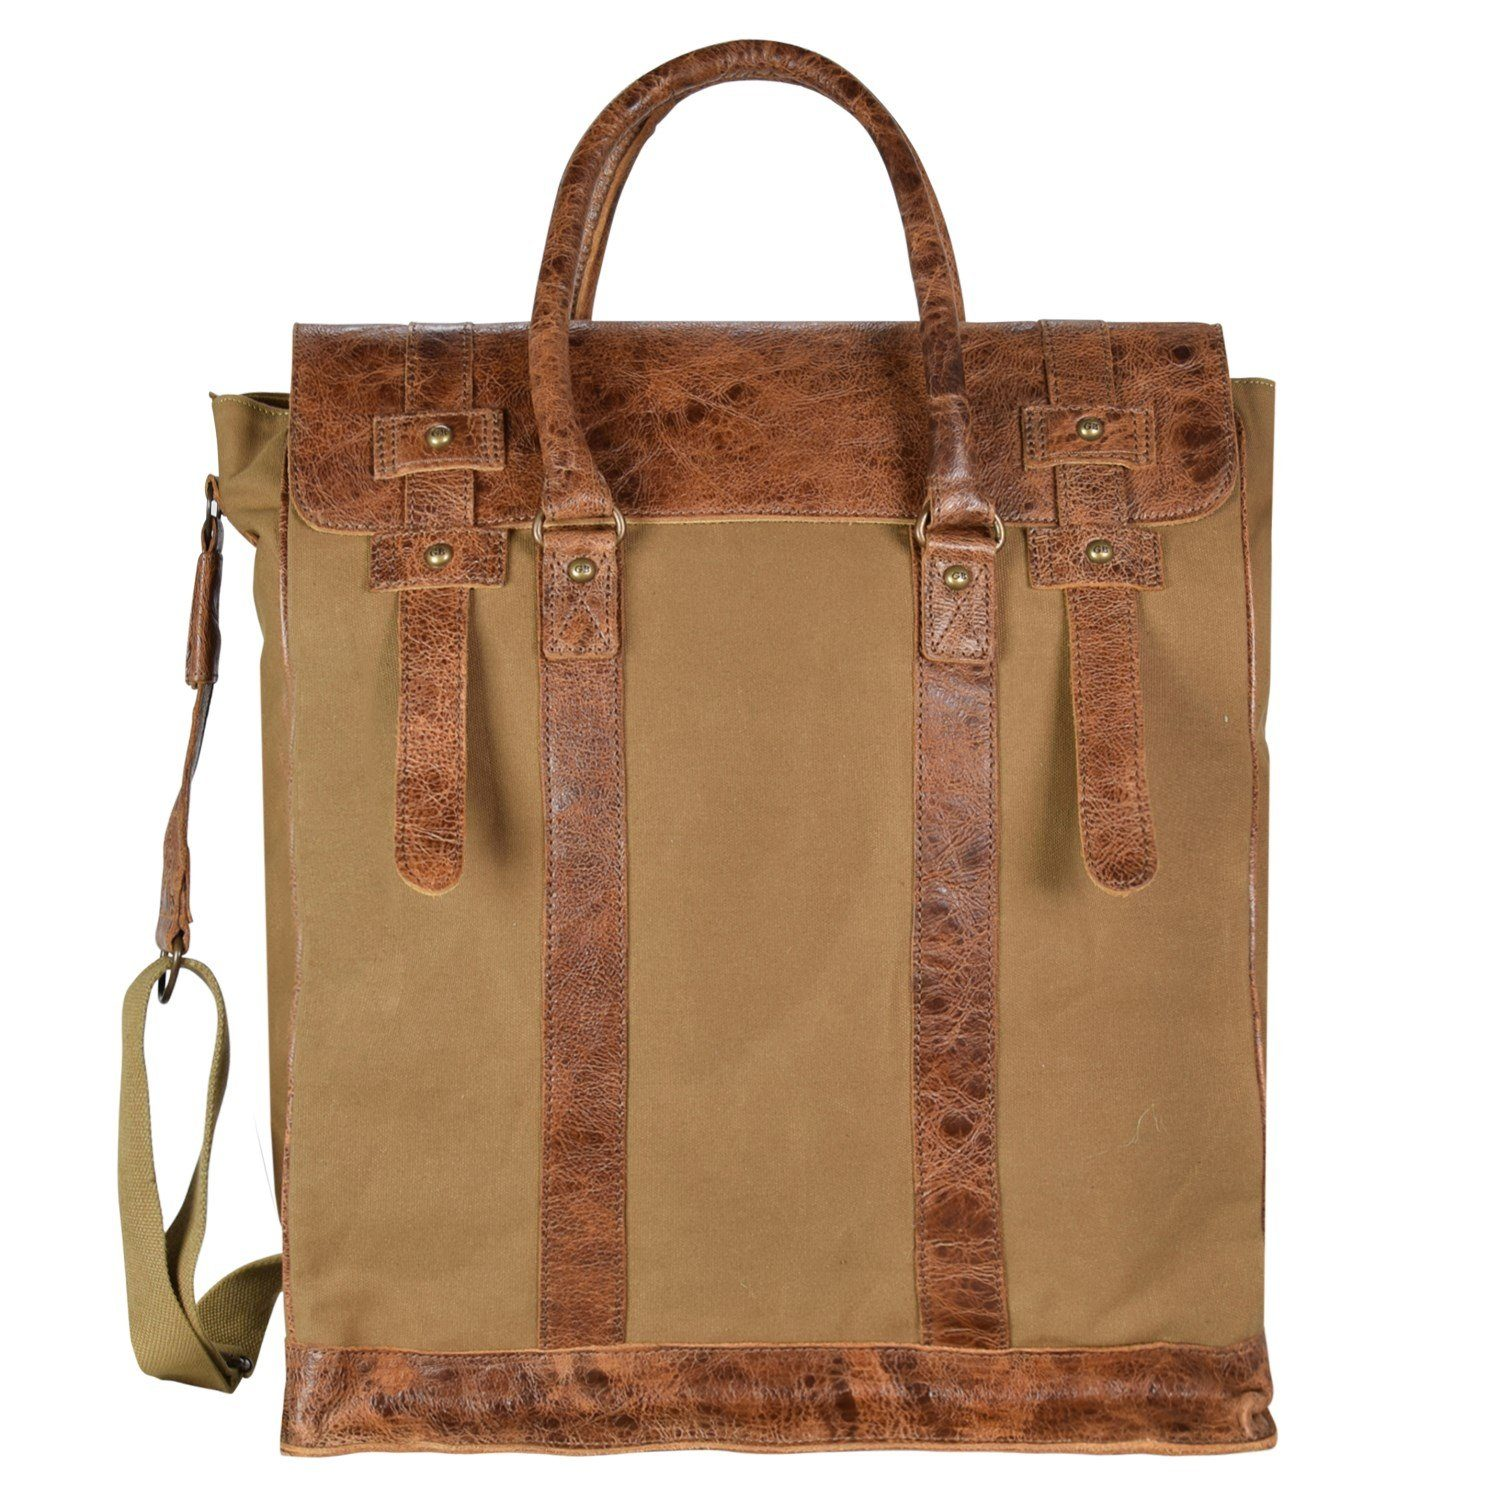 Greenburry White Spirit Flathead Handtasche 29 cm Laptopfach